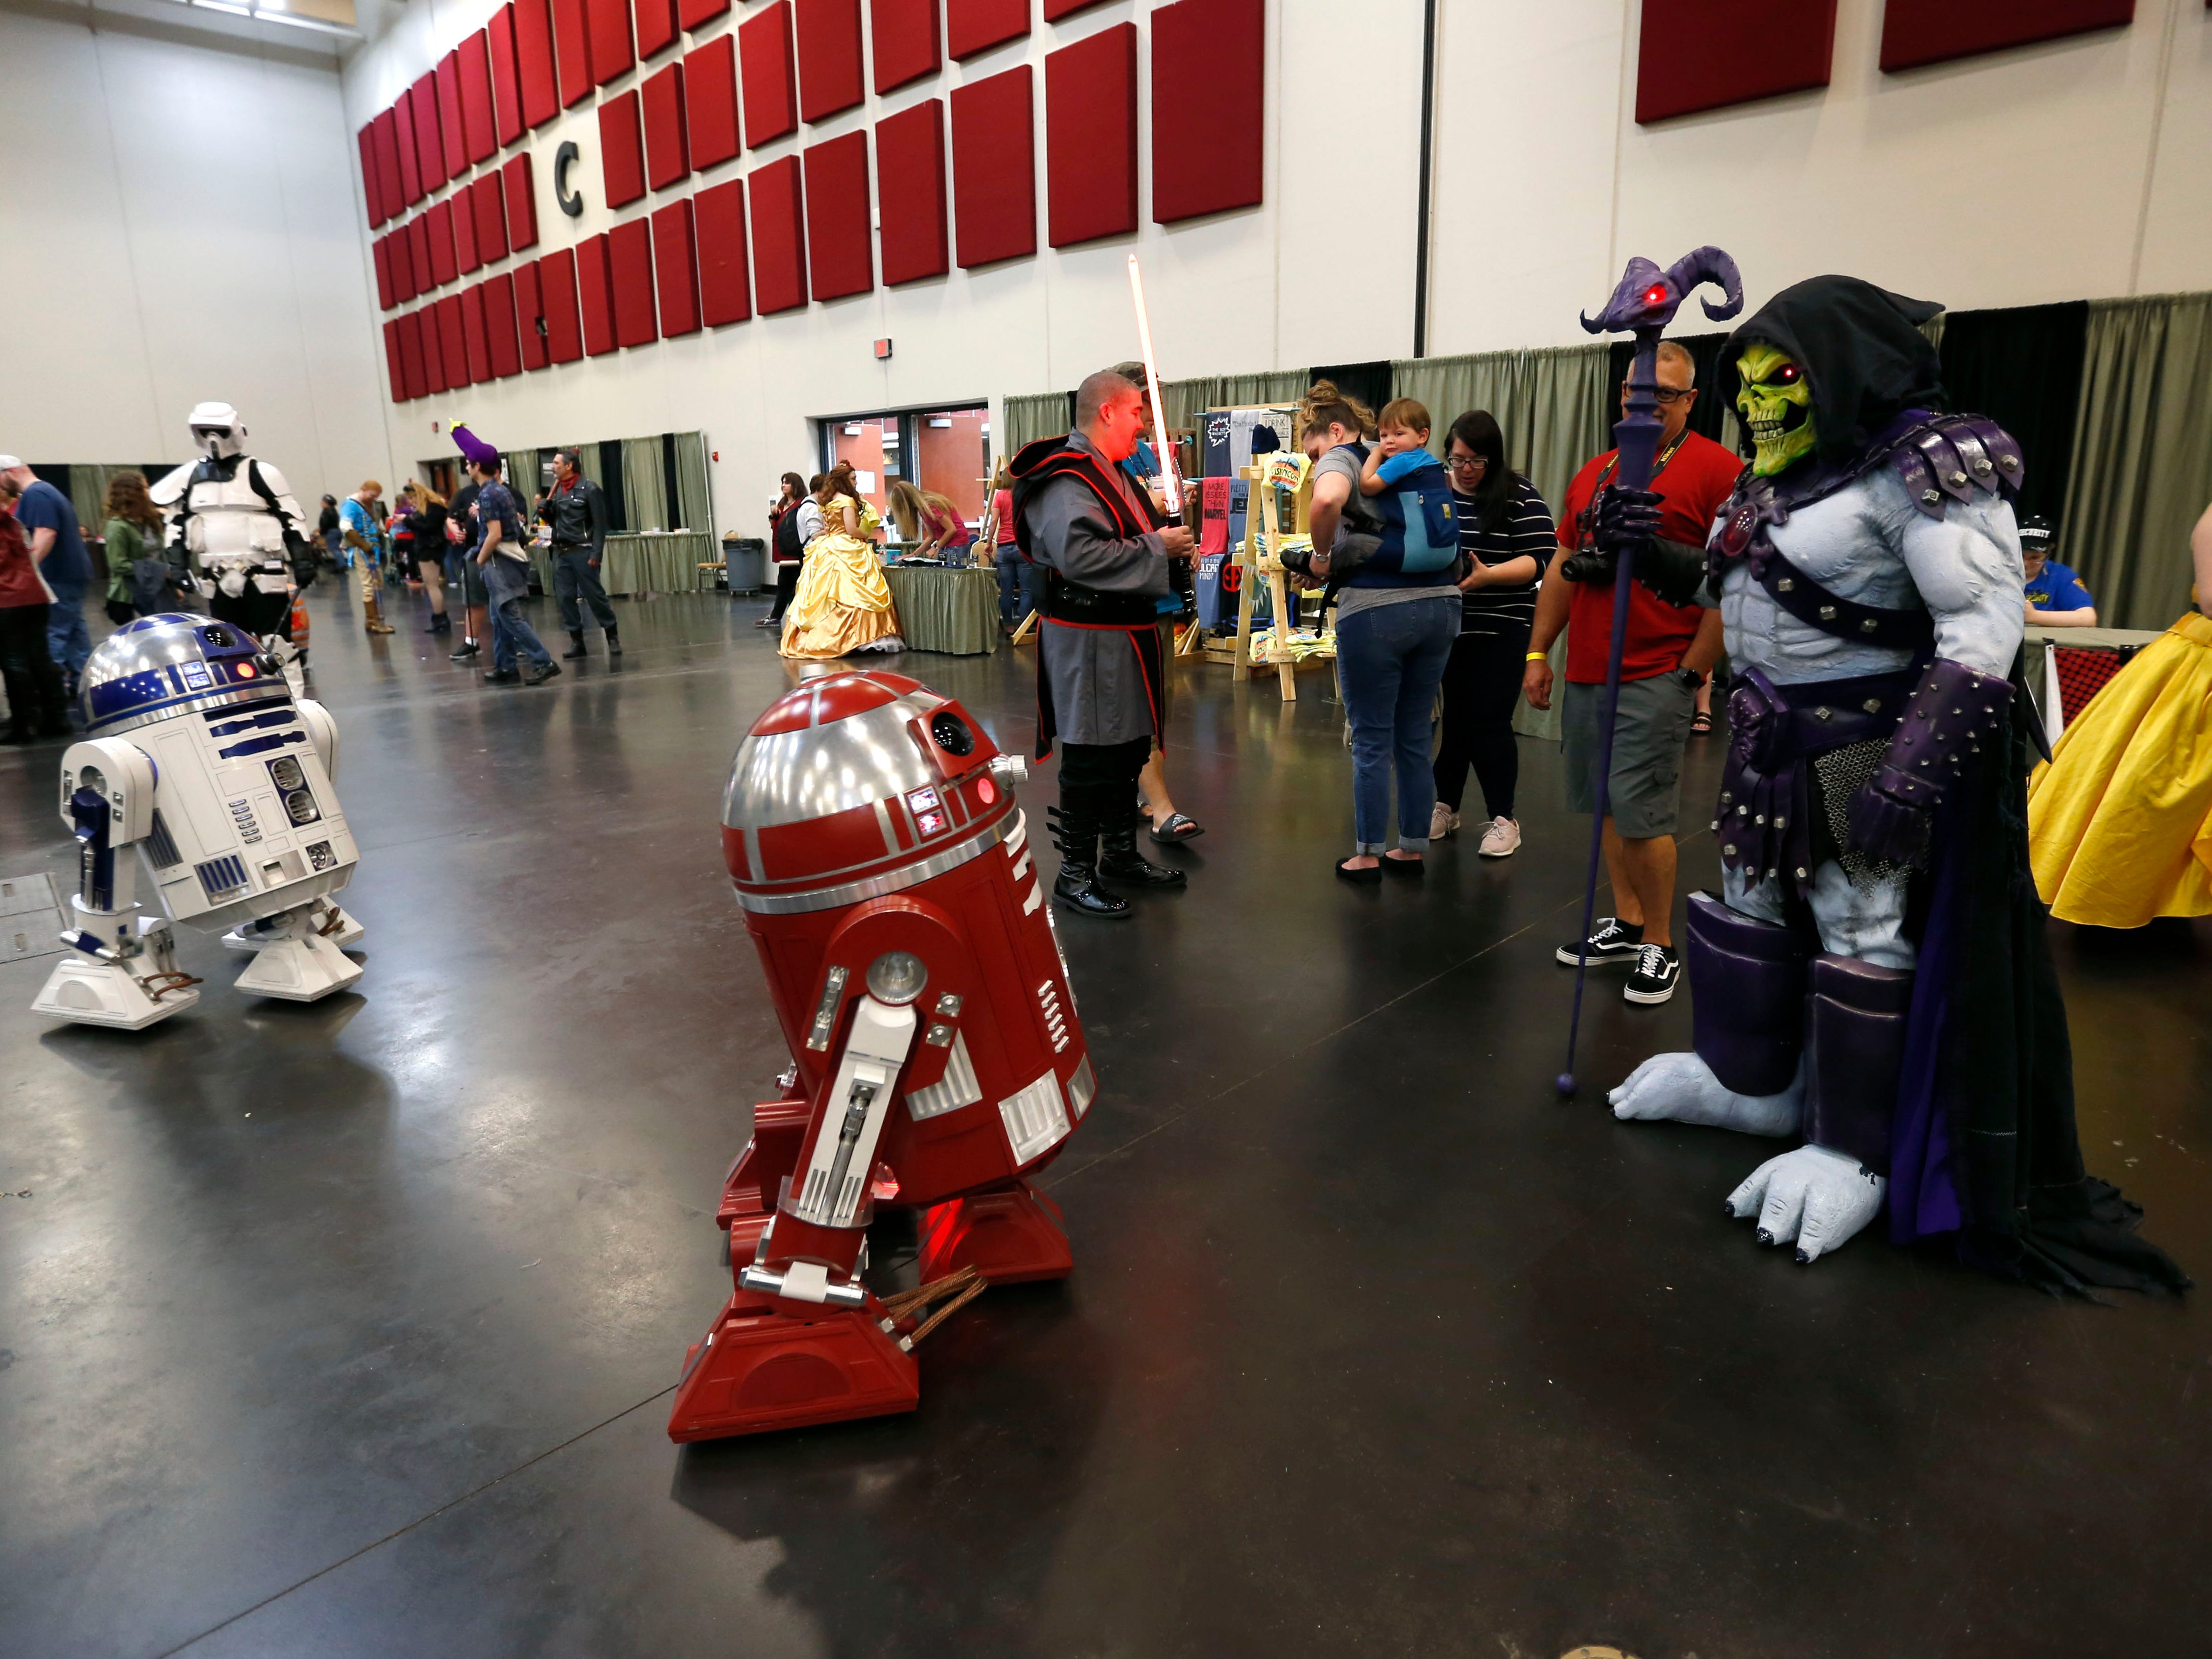 Scenes from Visioncon at the Springfield Expo Center on Saturday, May 11, 2019.